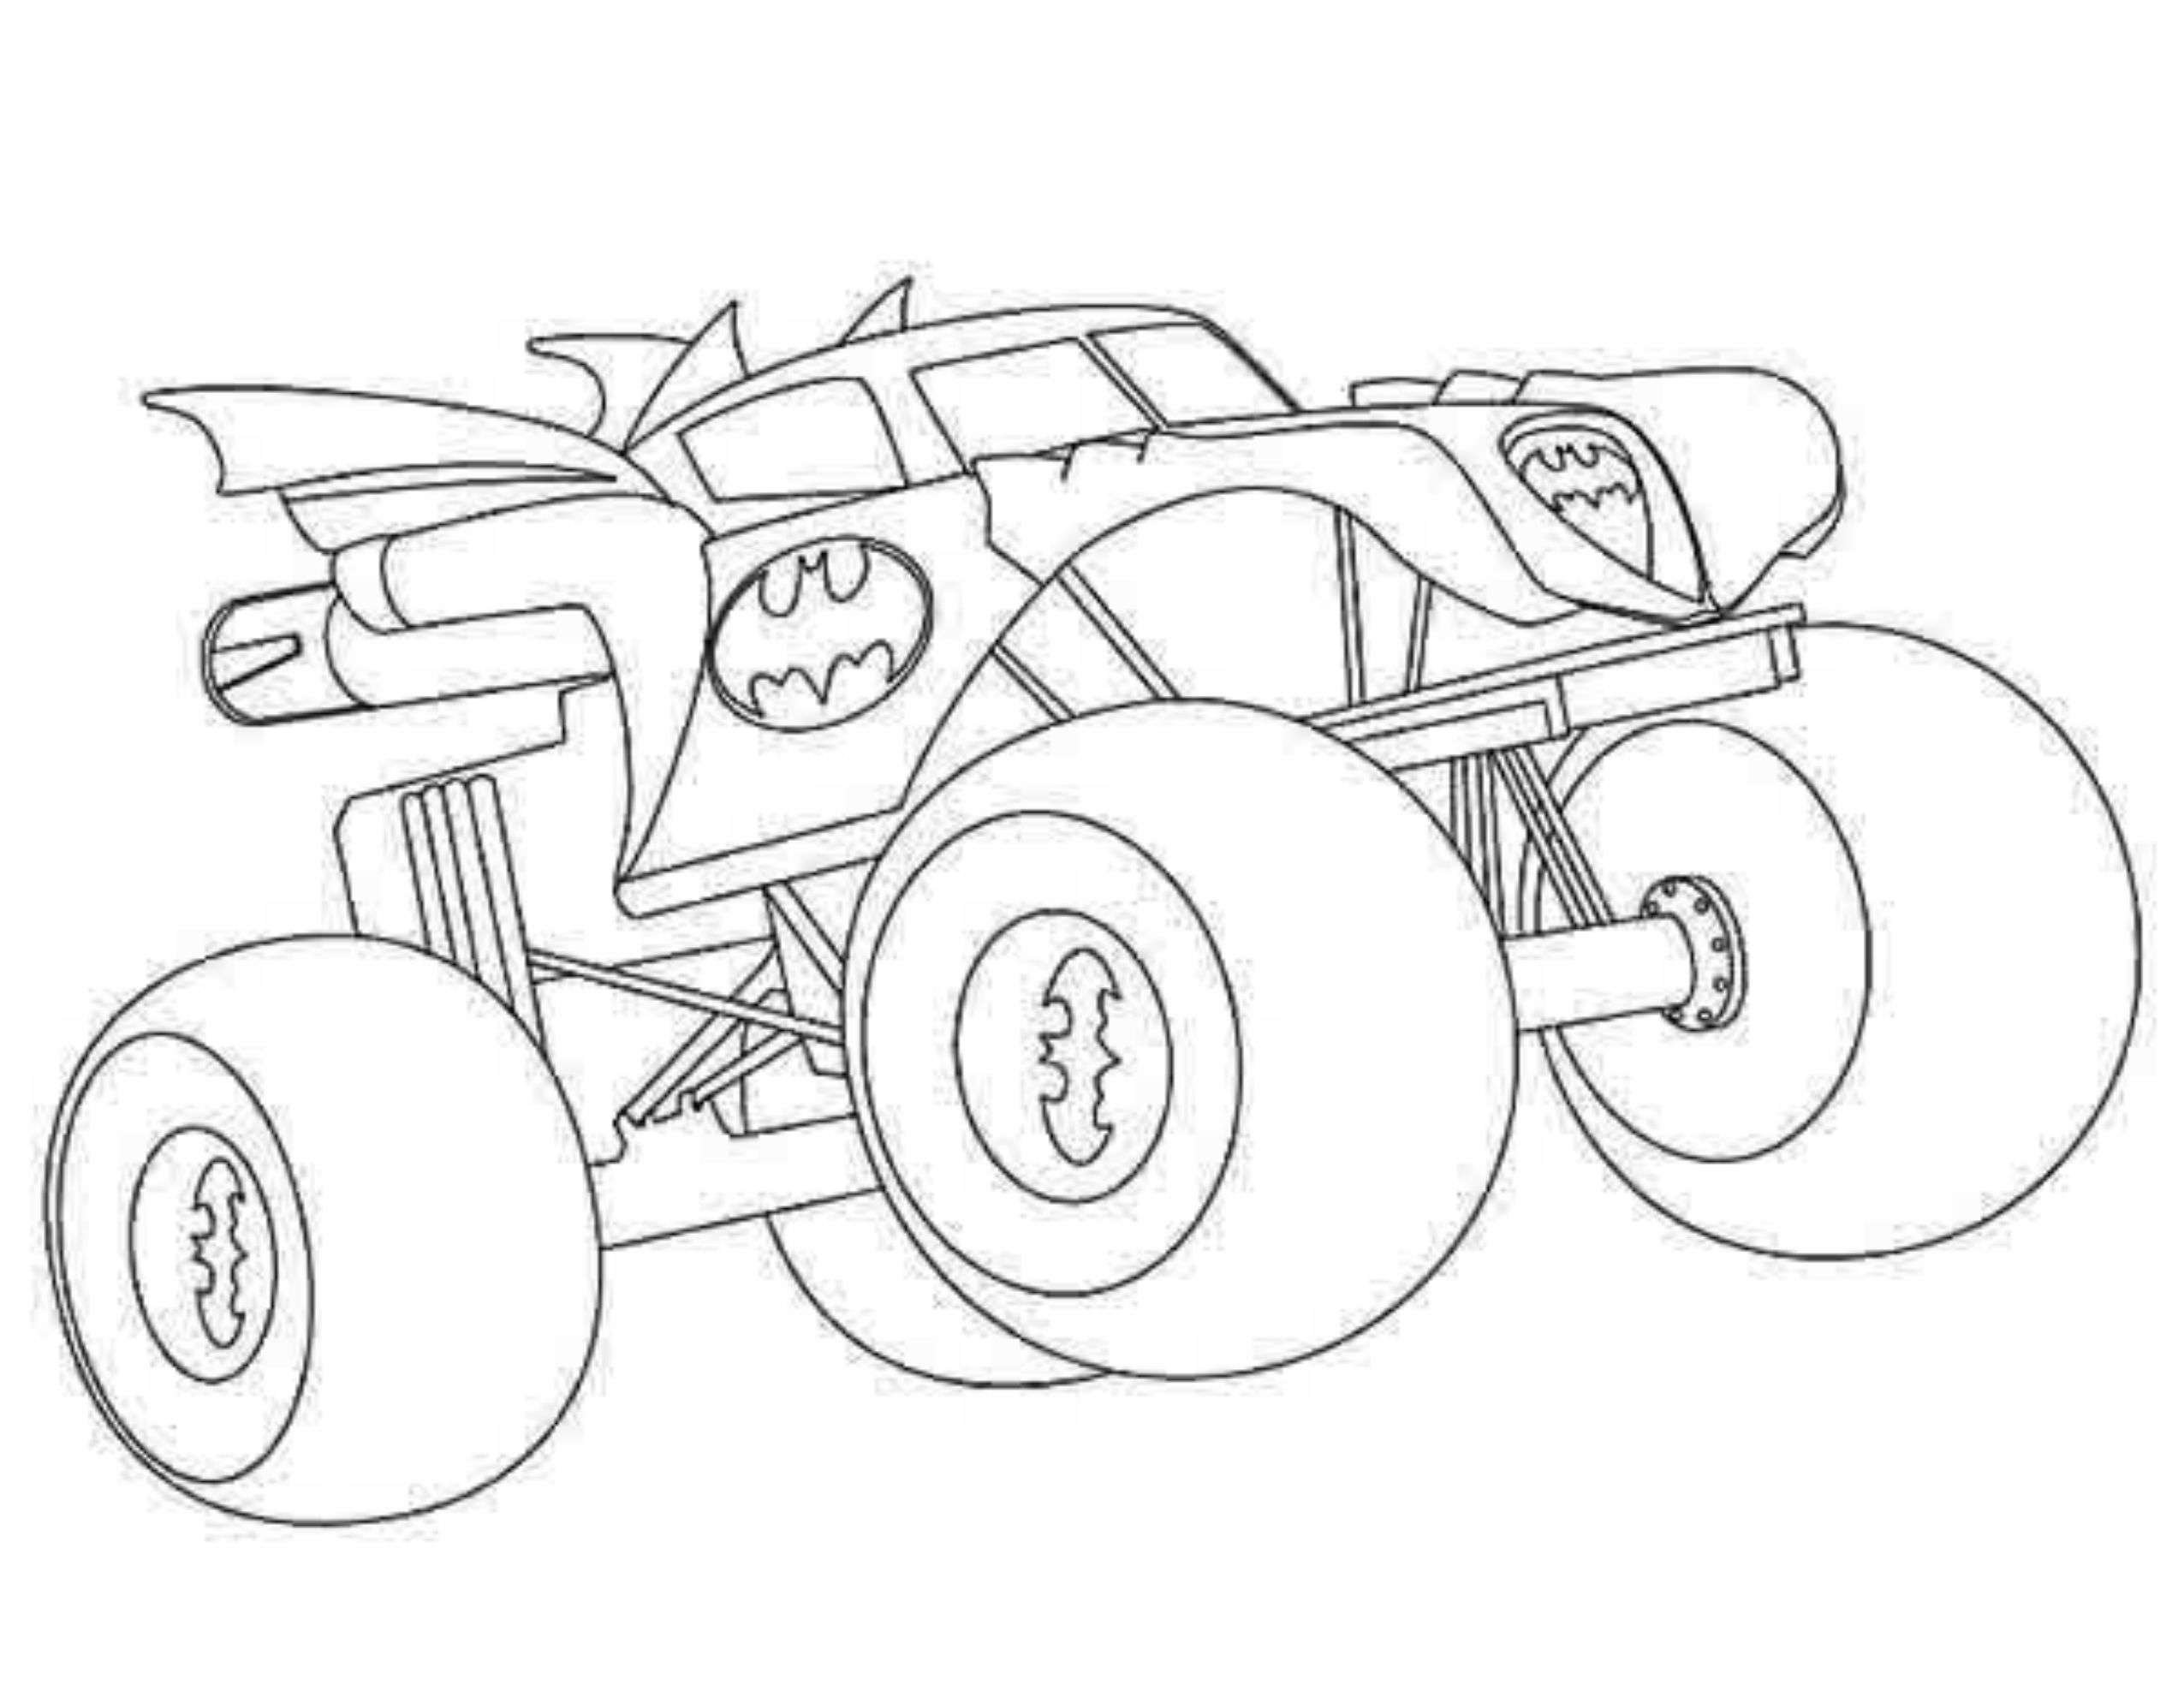 Pickup Truck Outline Drawing At Getdrawings Com Free For Personal